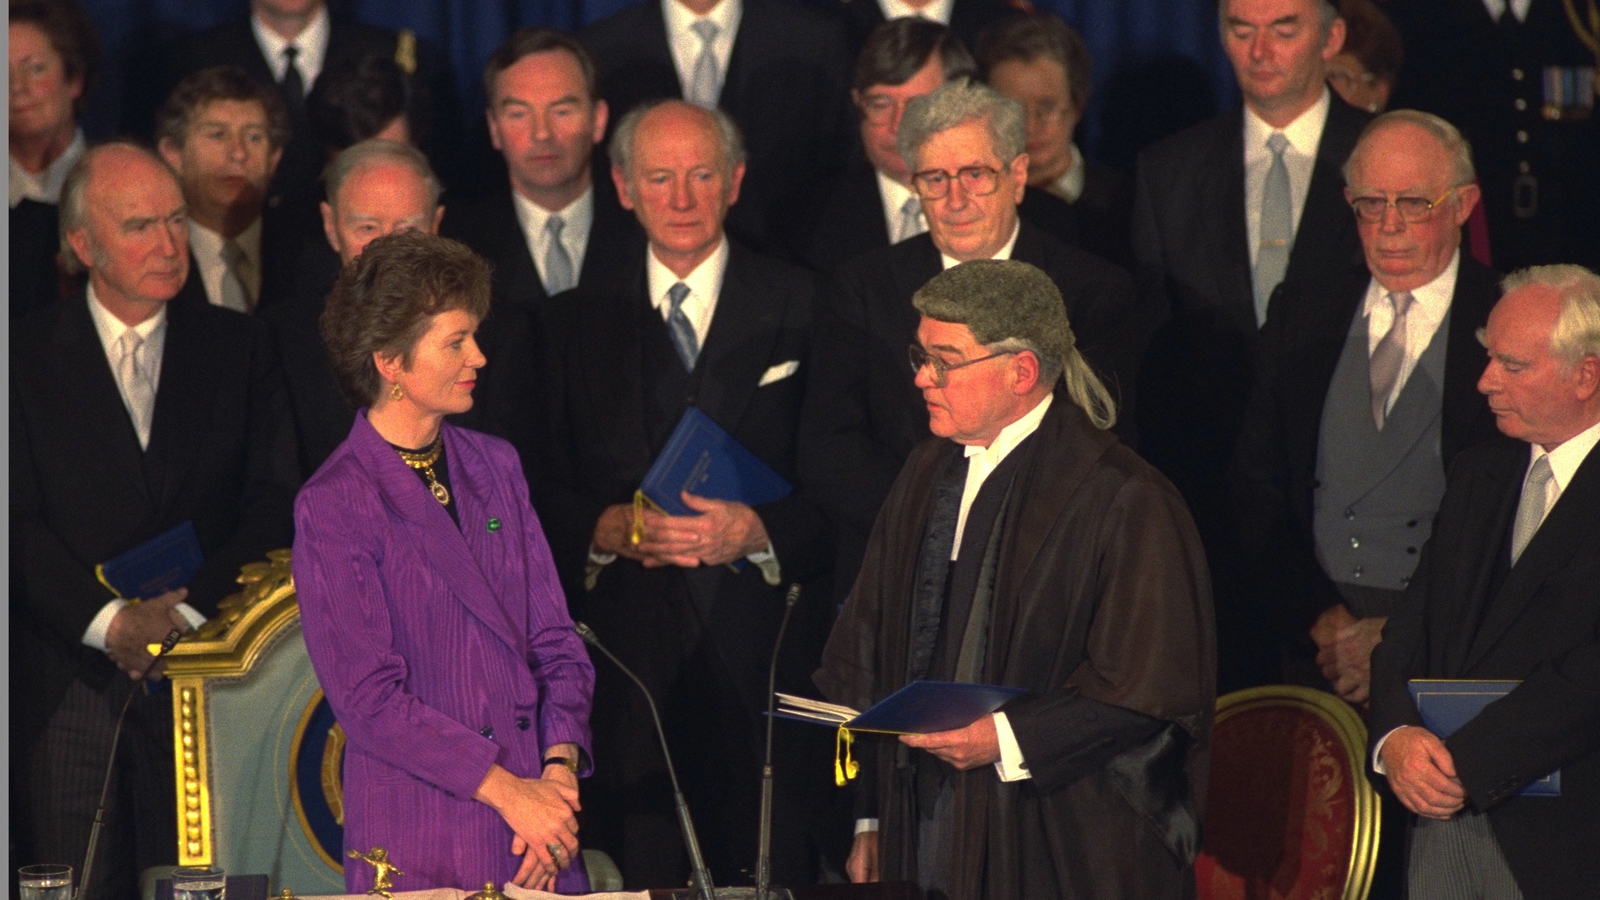 Image - Mary Robinson's inauguration (RTÉ Archives)